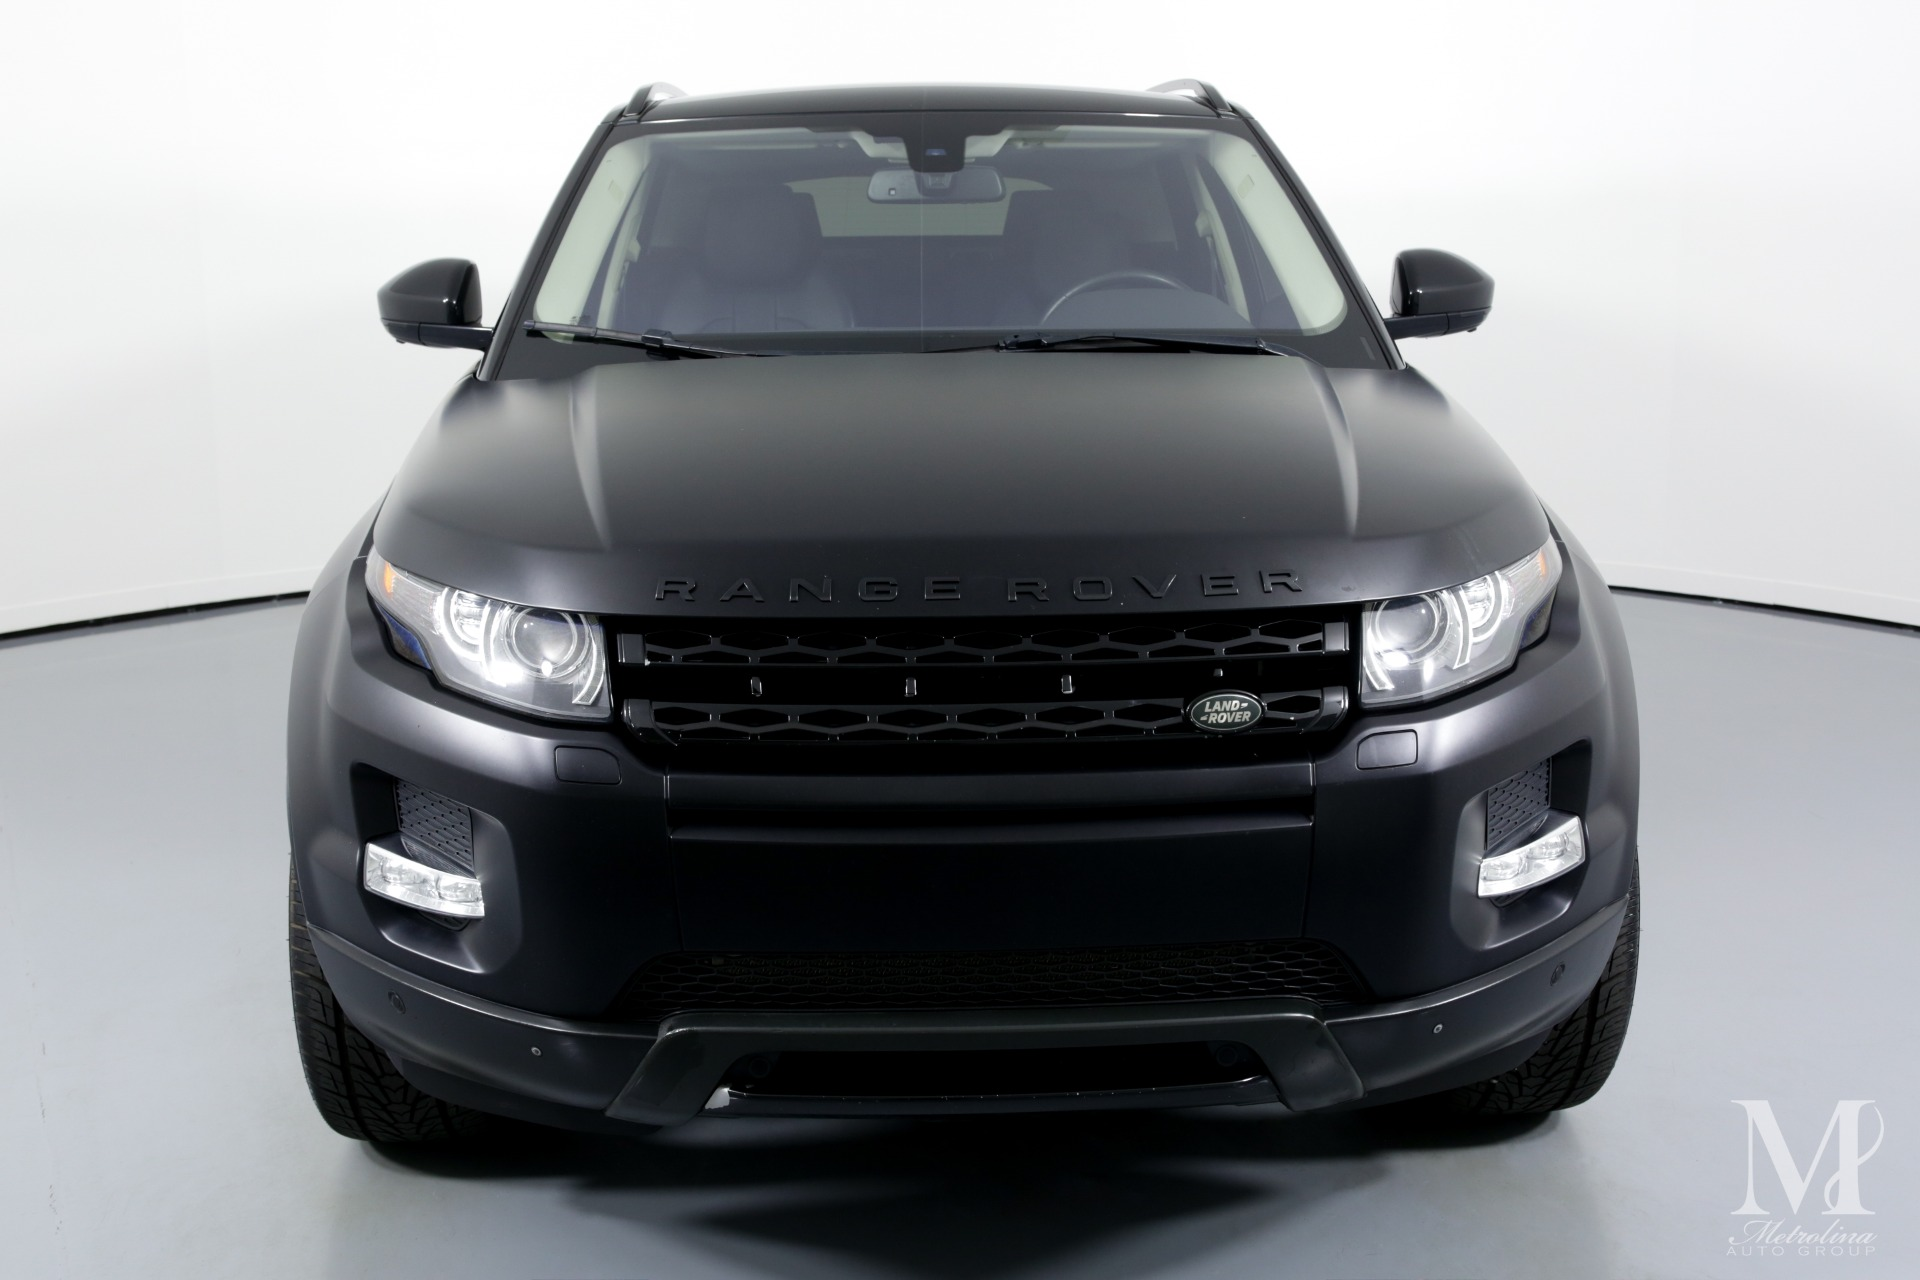 Used 2015 Land Rover Range Rover Evoque Pure Plus AWD 4dr SUV for sale $26,996 at Metrolina Auto Group in Charlotte NC 28217 - 3